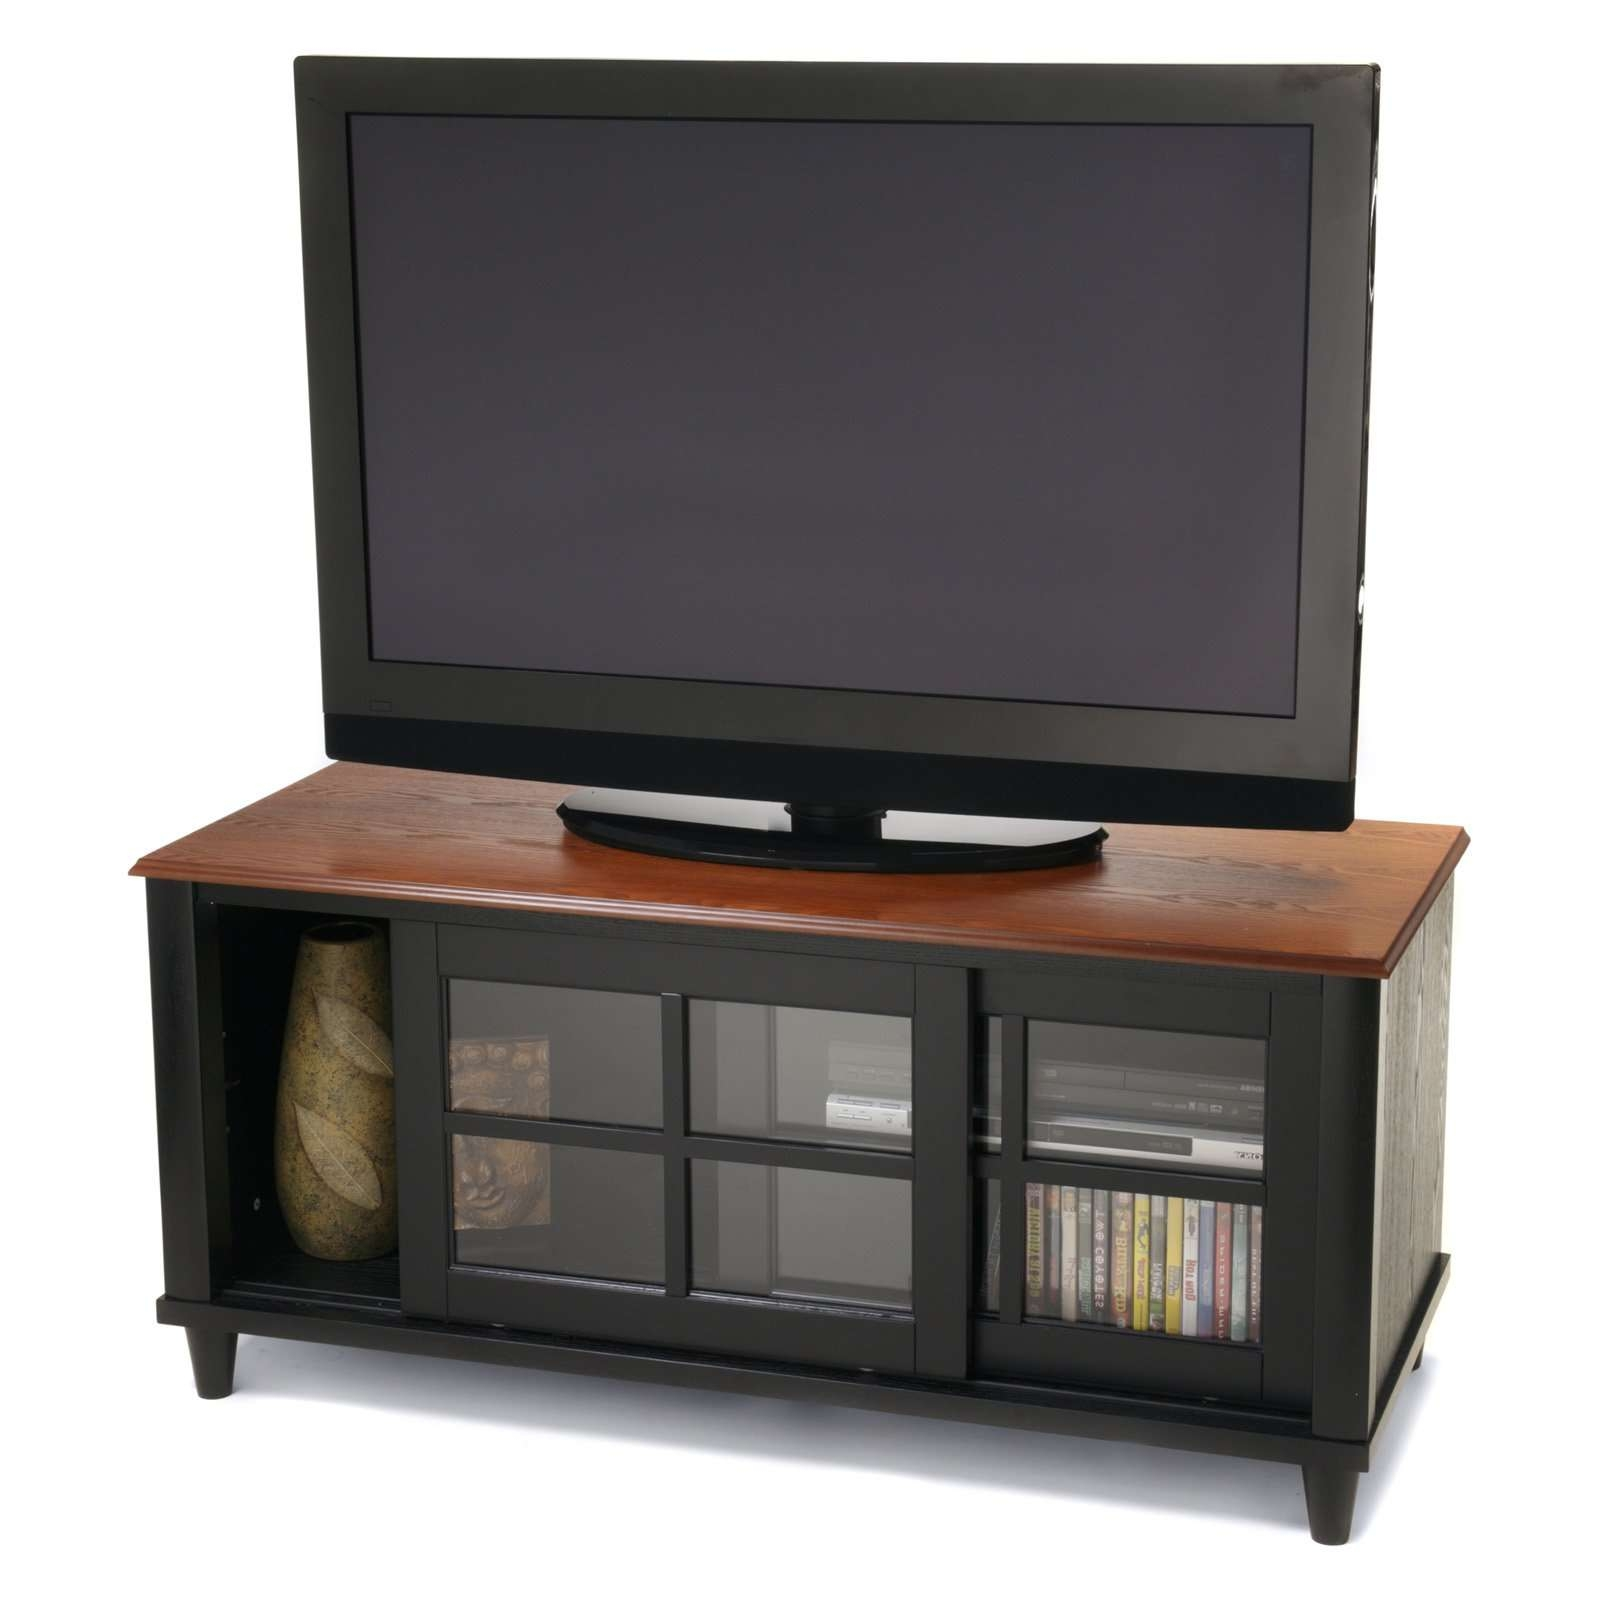 Convenience Concepts French Country Tv Stand | Hayneedle Within French Country Tv Stands (View 5 of 15)